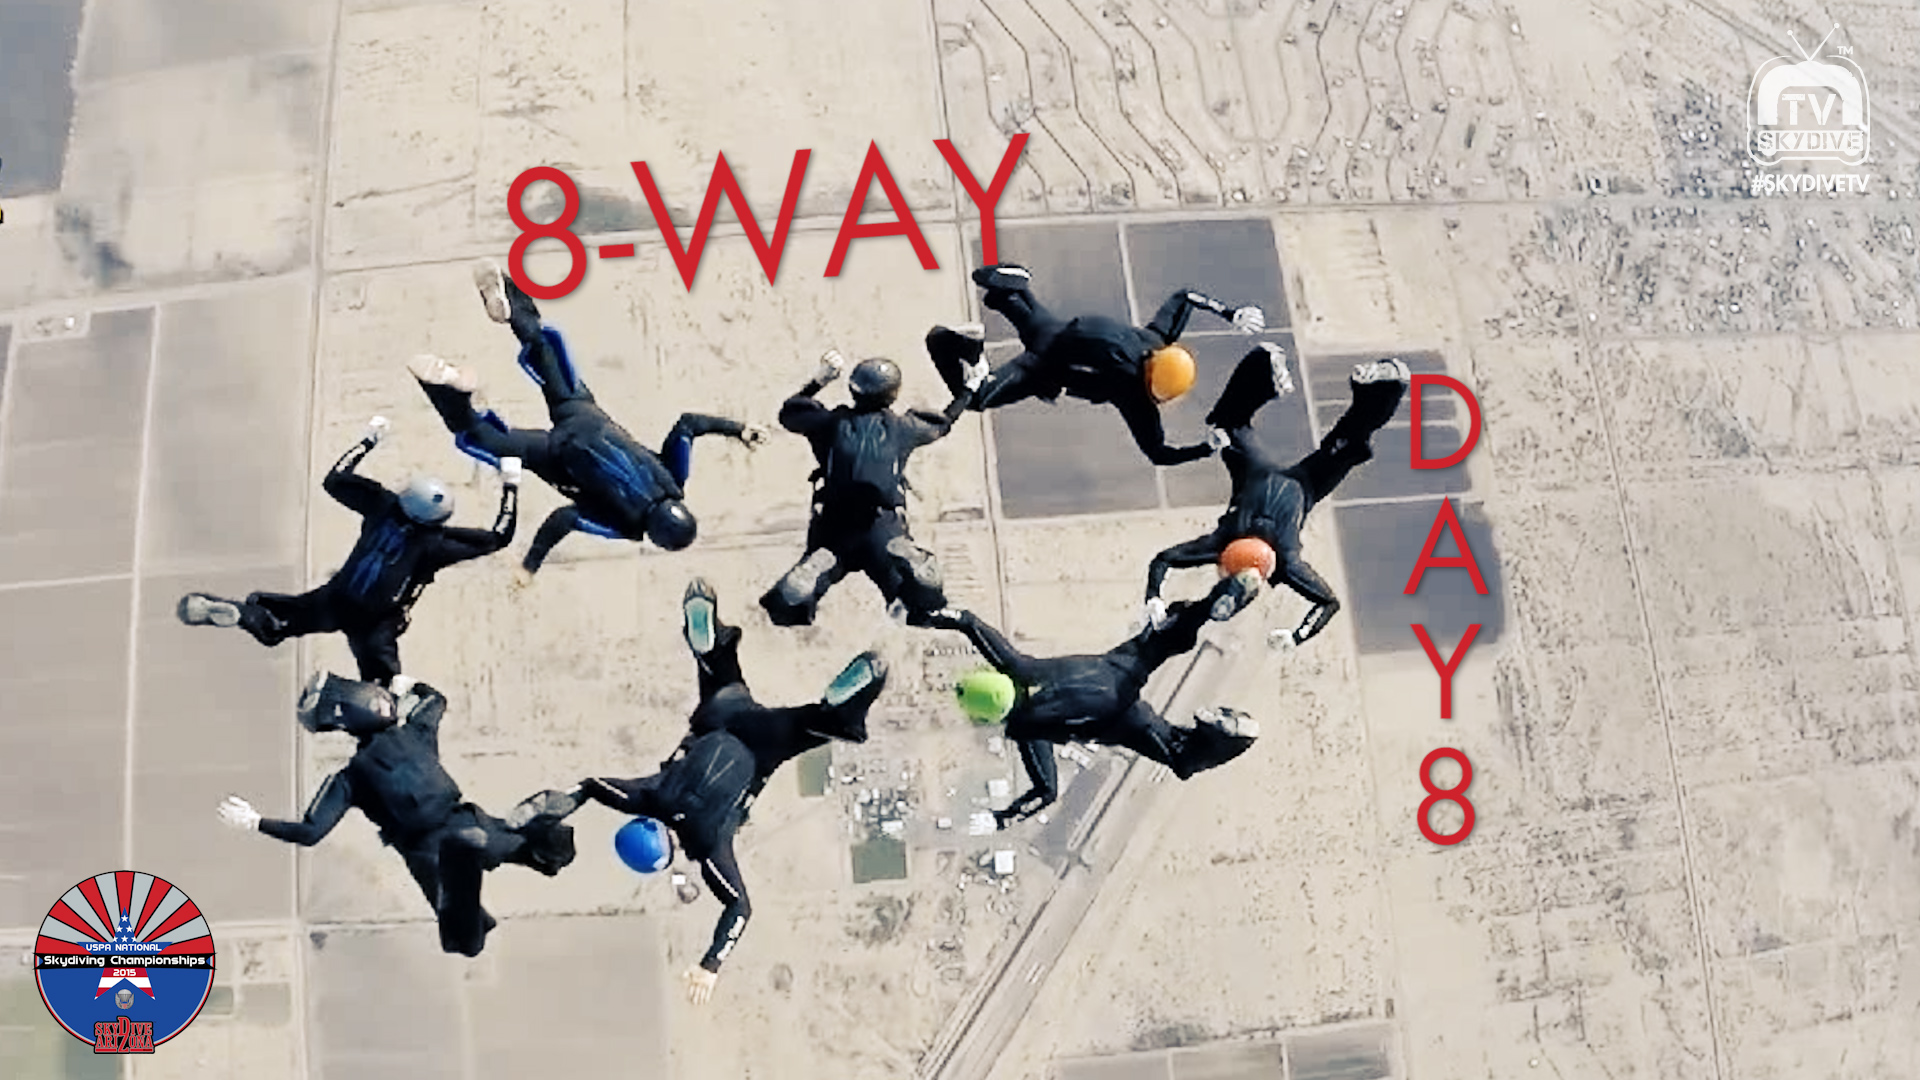 USPA_AZ_DAY8-8 way